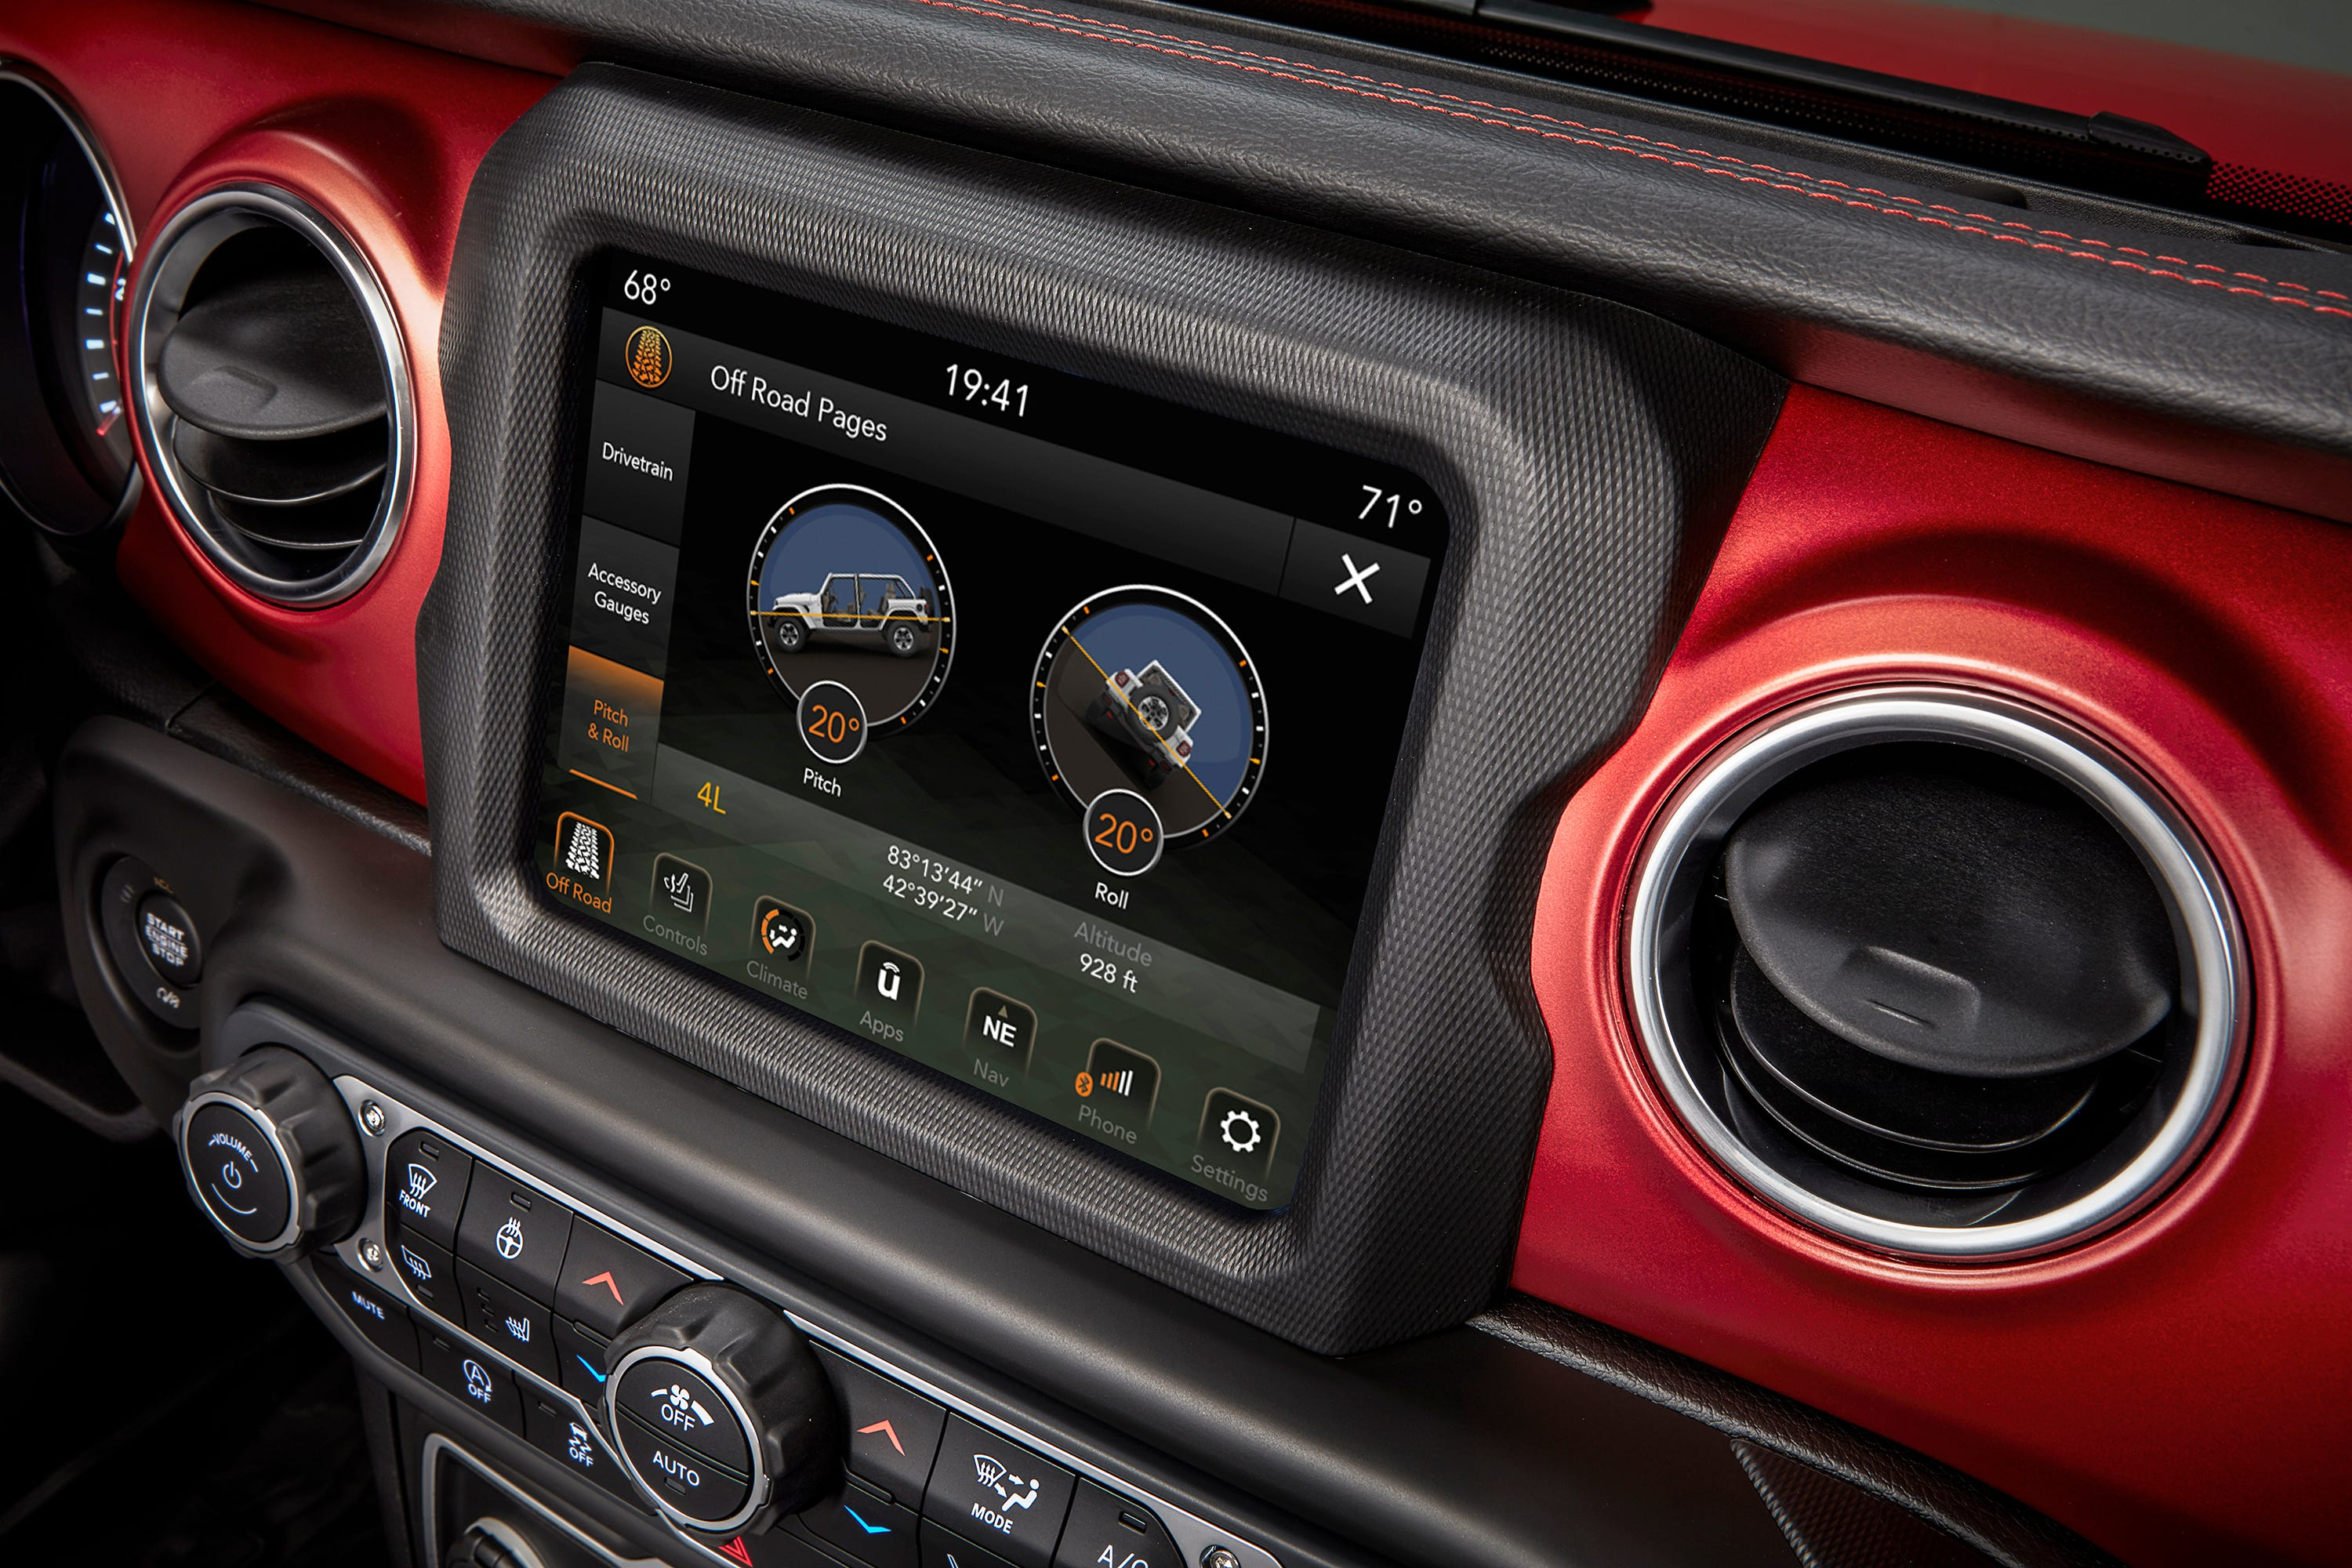 This is the video screen in the 2018 Jeep Wrangler